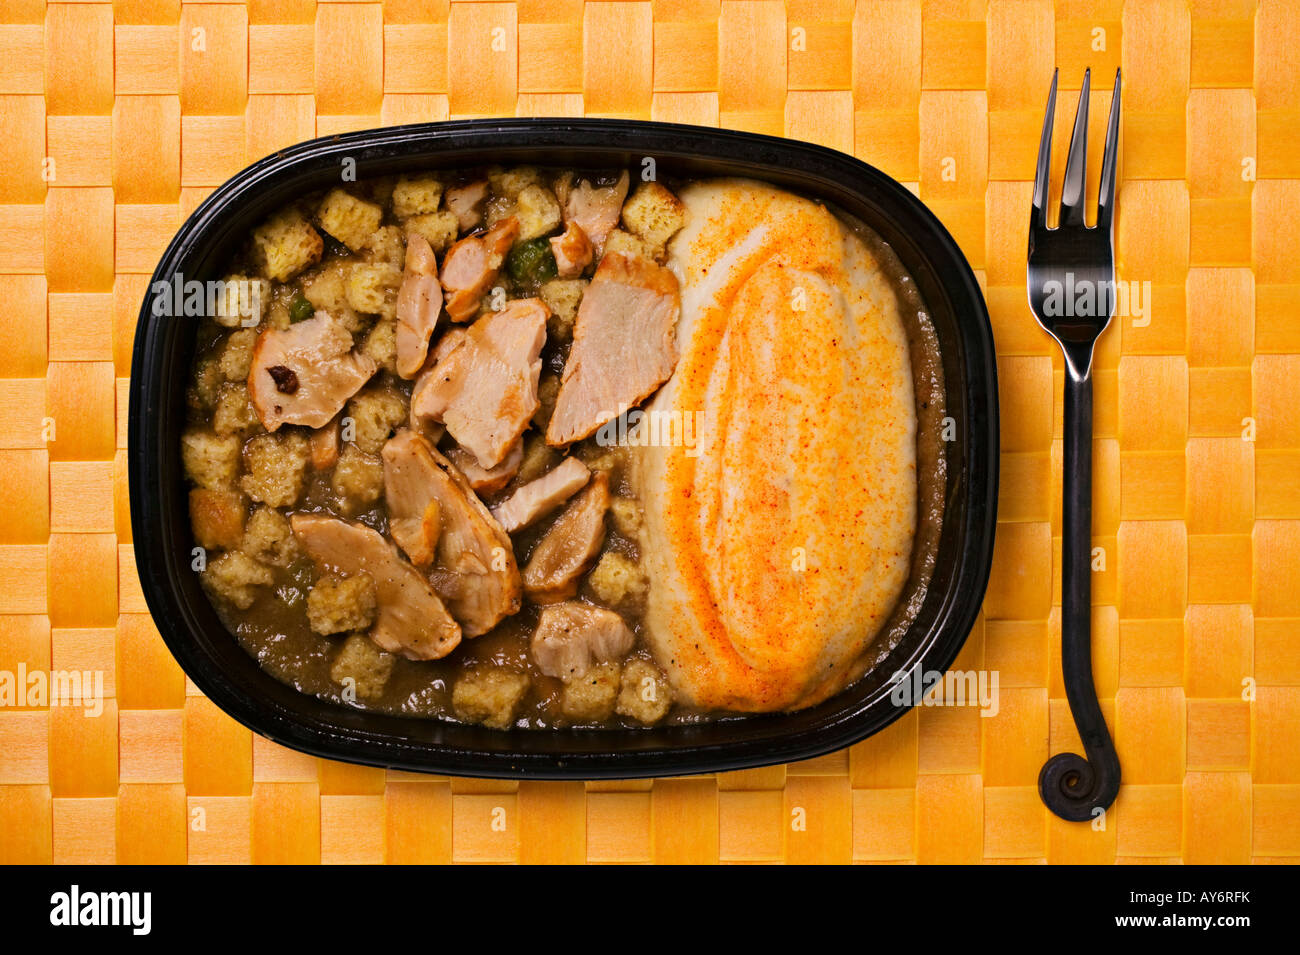 TV dinner turkey and potatoes - Stock Image